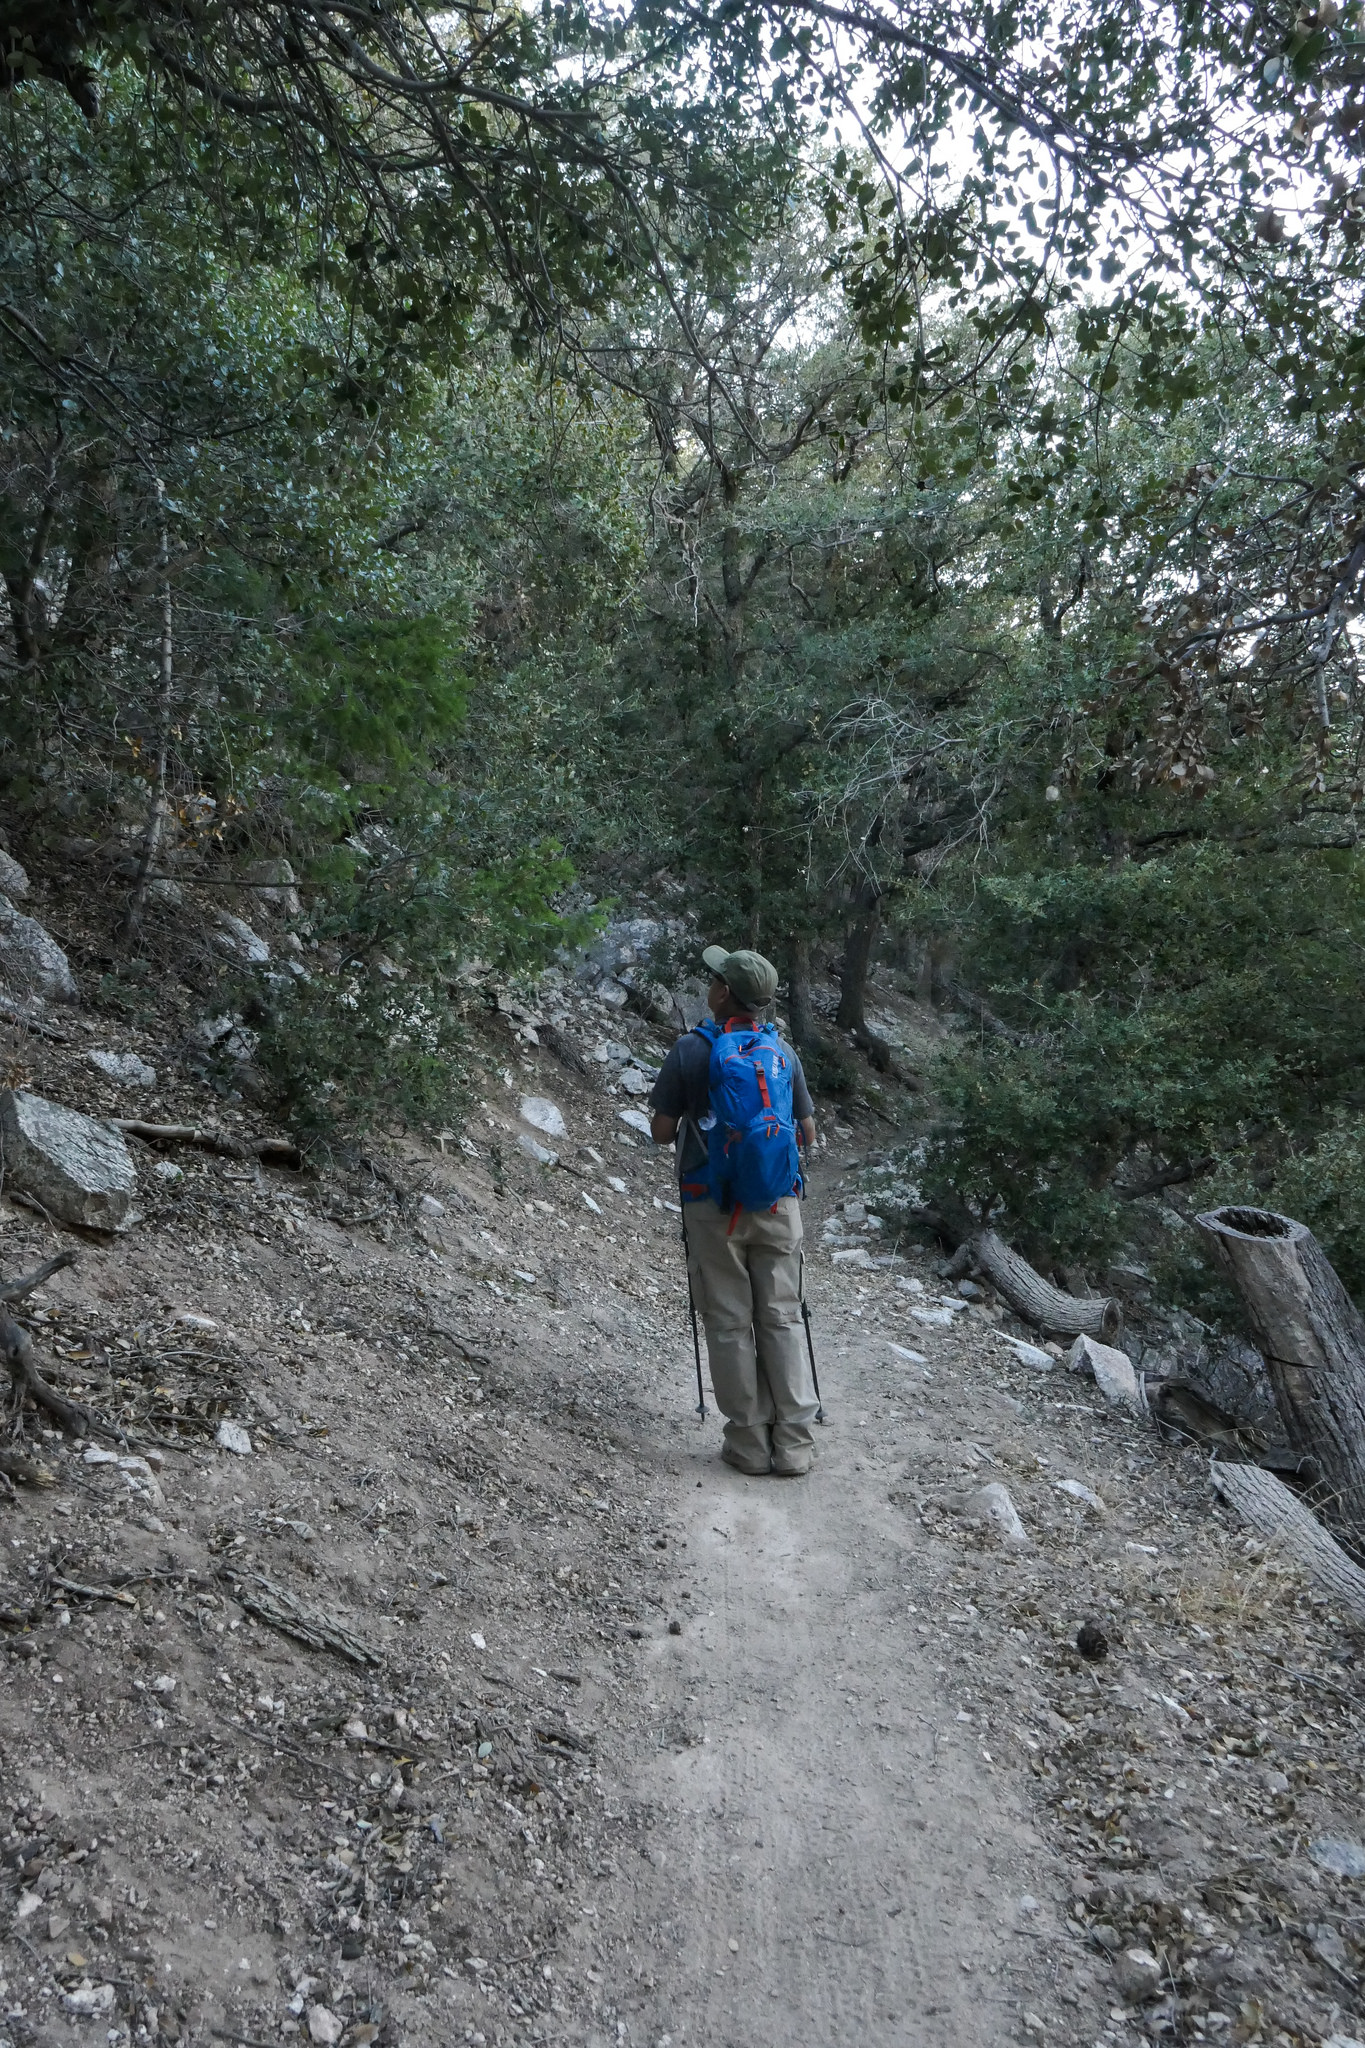 Heading back down now on the Sam Merrill Trail. This trail had a lovely stretch of oak forest.